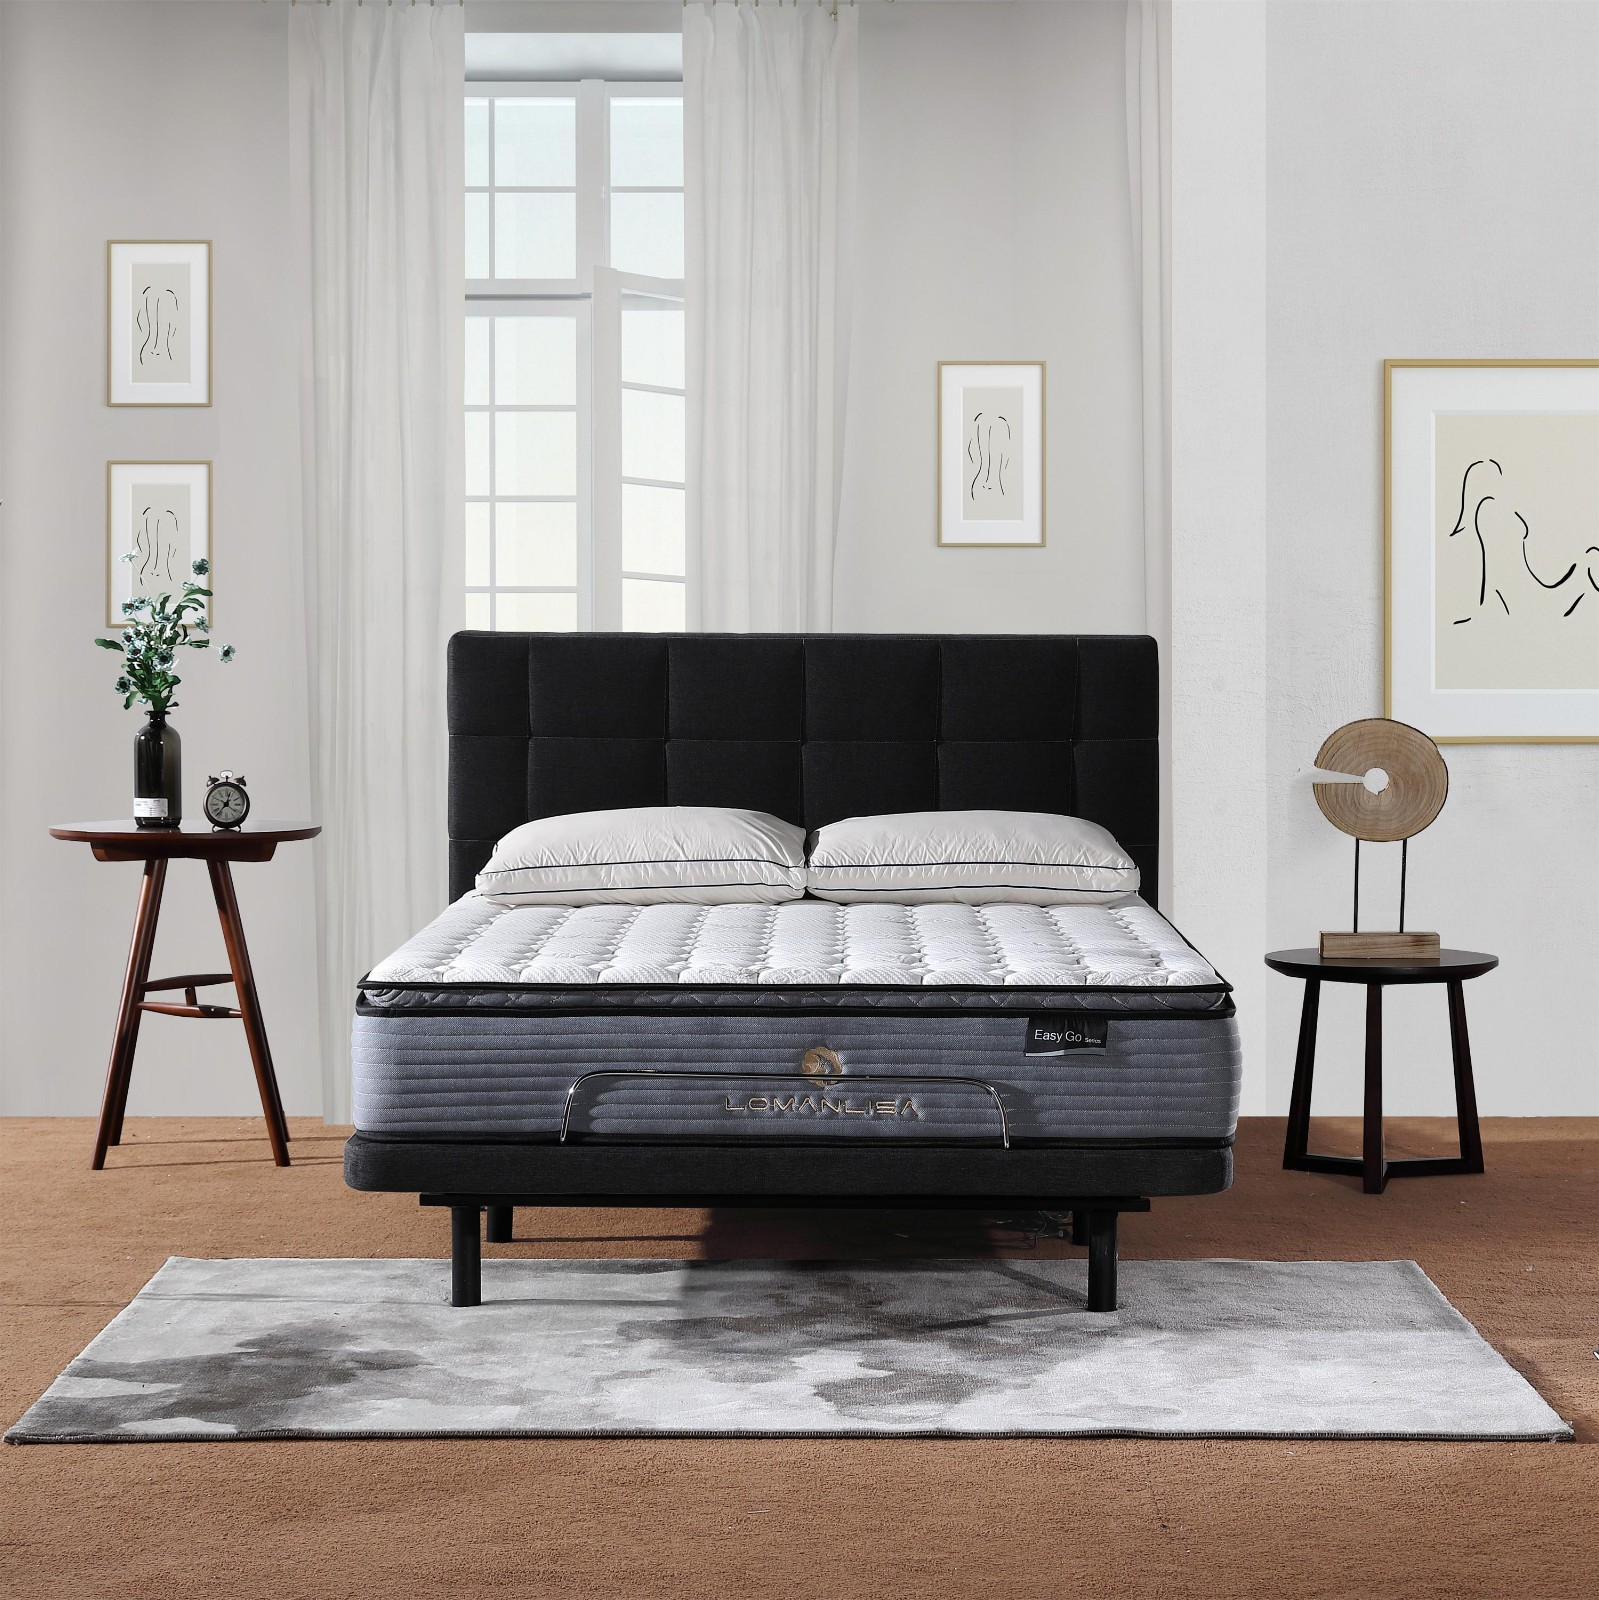 Pillow Top Design Electric Adjustable Bed with Quiet and Stable Motor in King Queen Size-1